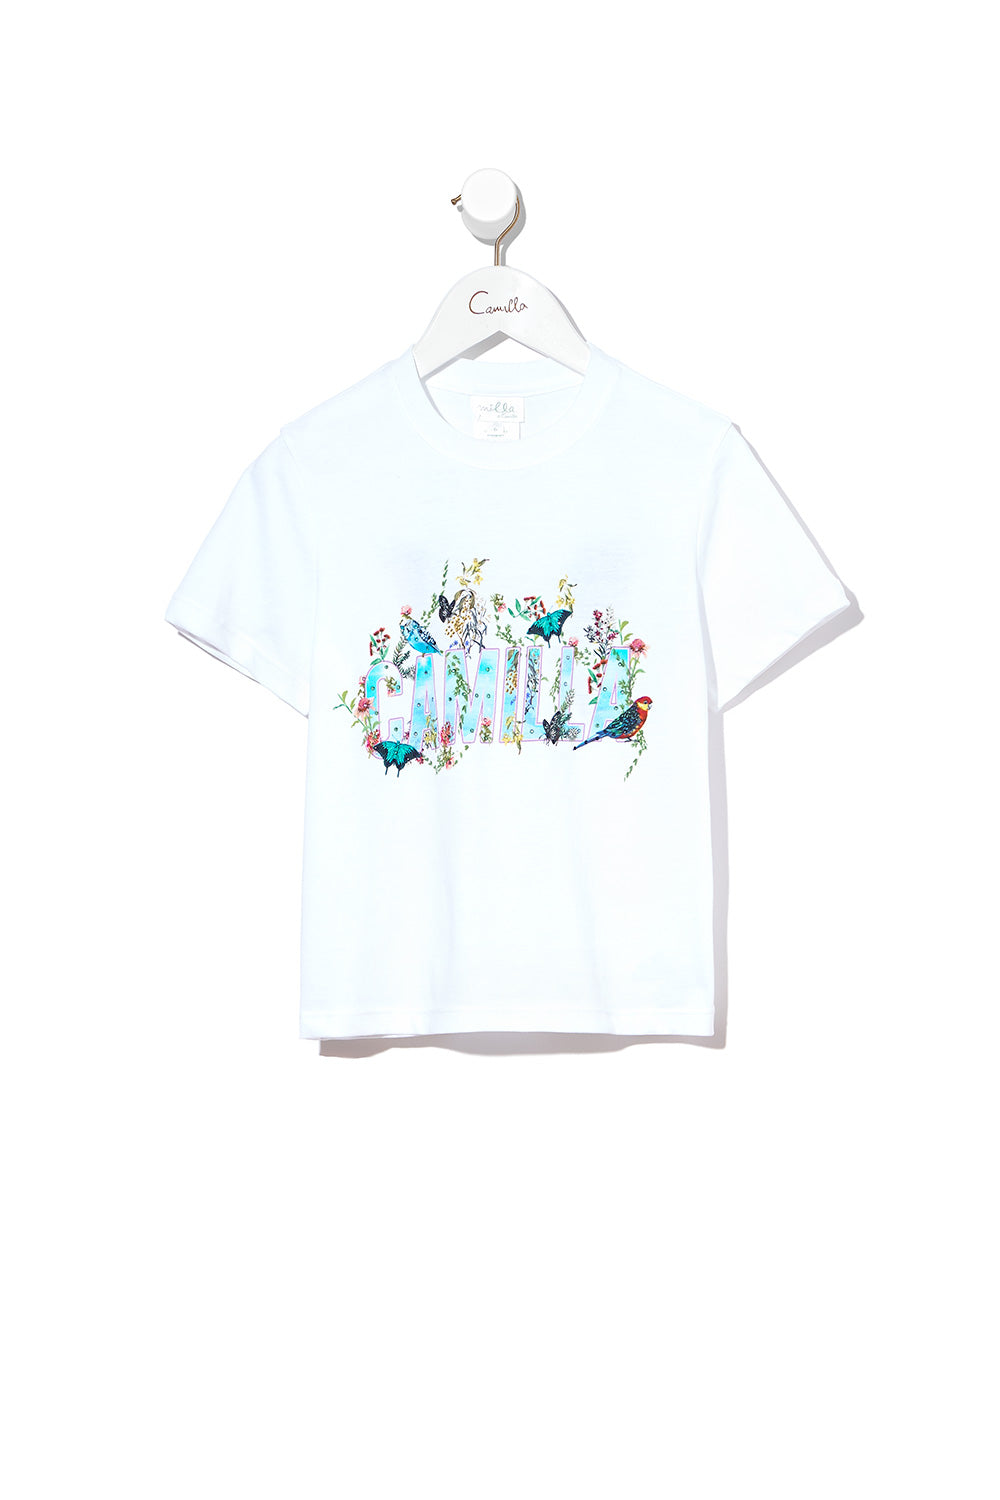 INFANTS SHORT SLEEVE T-SHIRT REEF WARRIOR